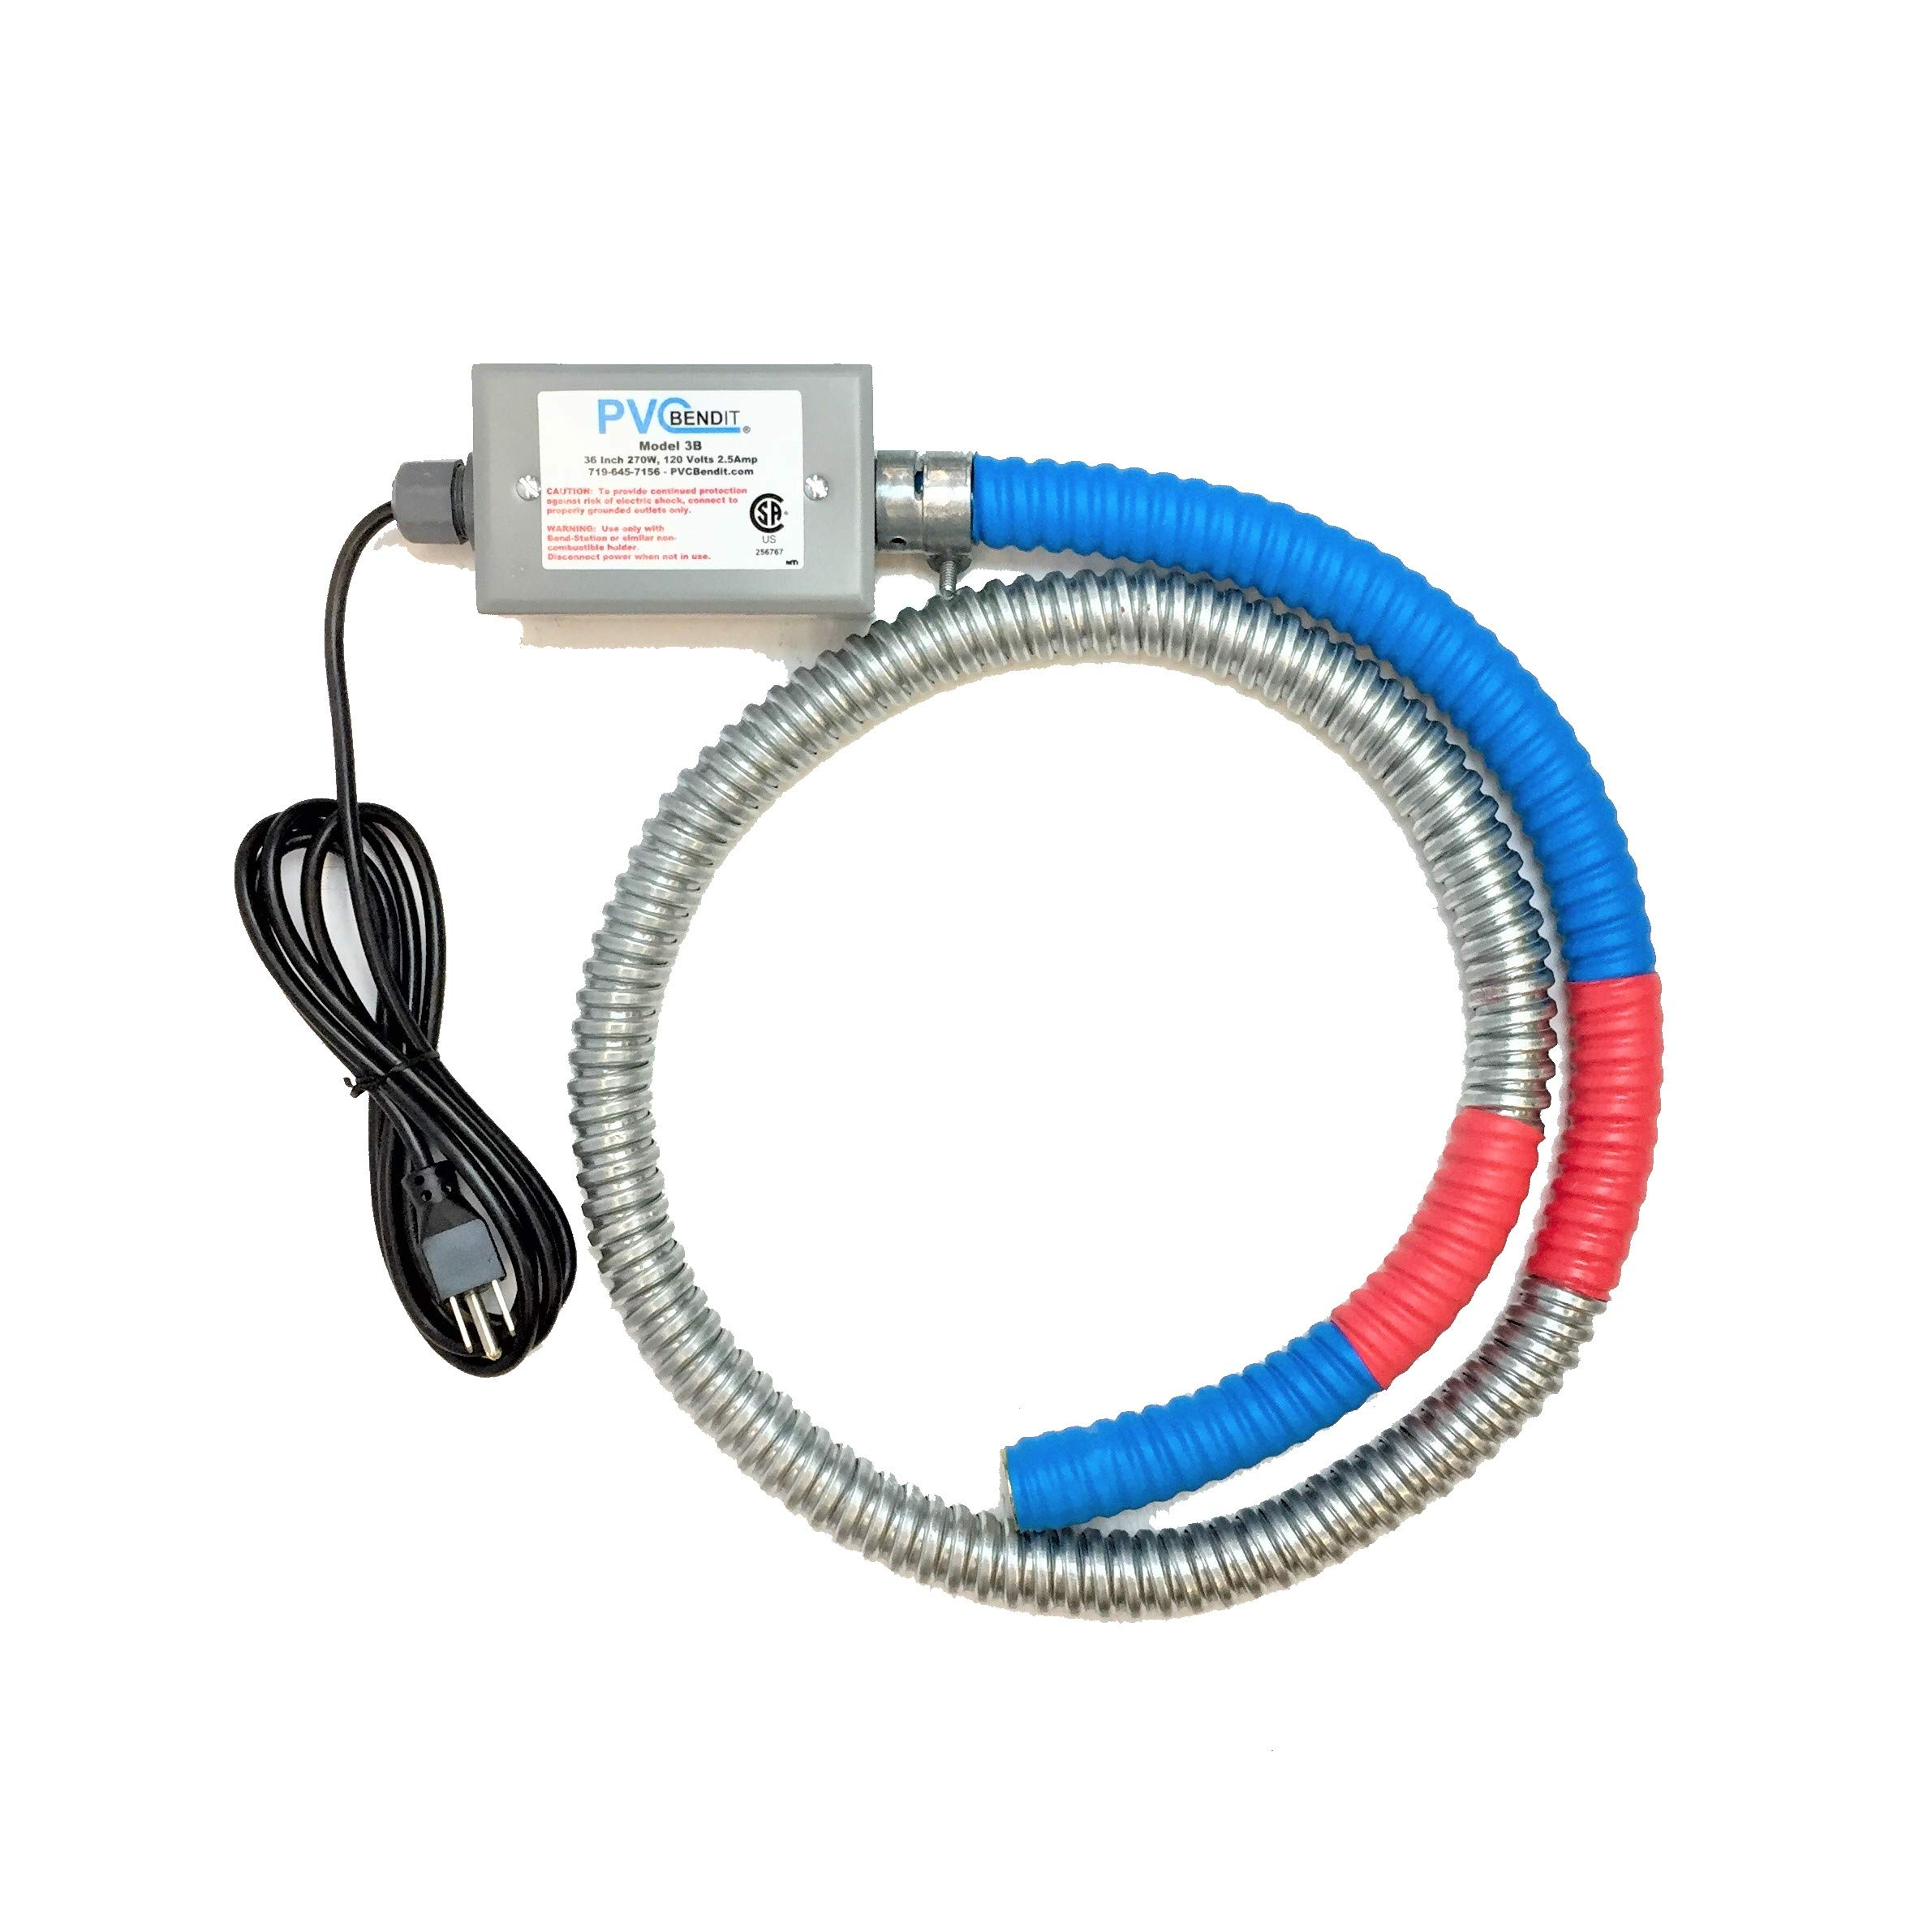 PVC Pipe Heater Bender - PVC Bendit Tool B3 for PVC Pipe Schedule 40 - 80 Sizes ID 1 1/4'' to 6'' X 3' ft length by PVC Bendit